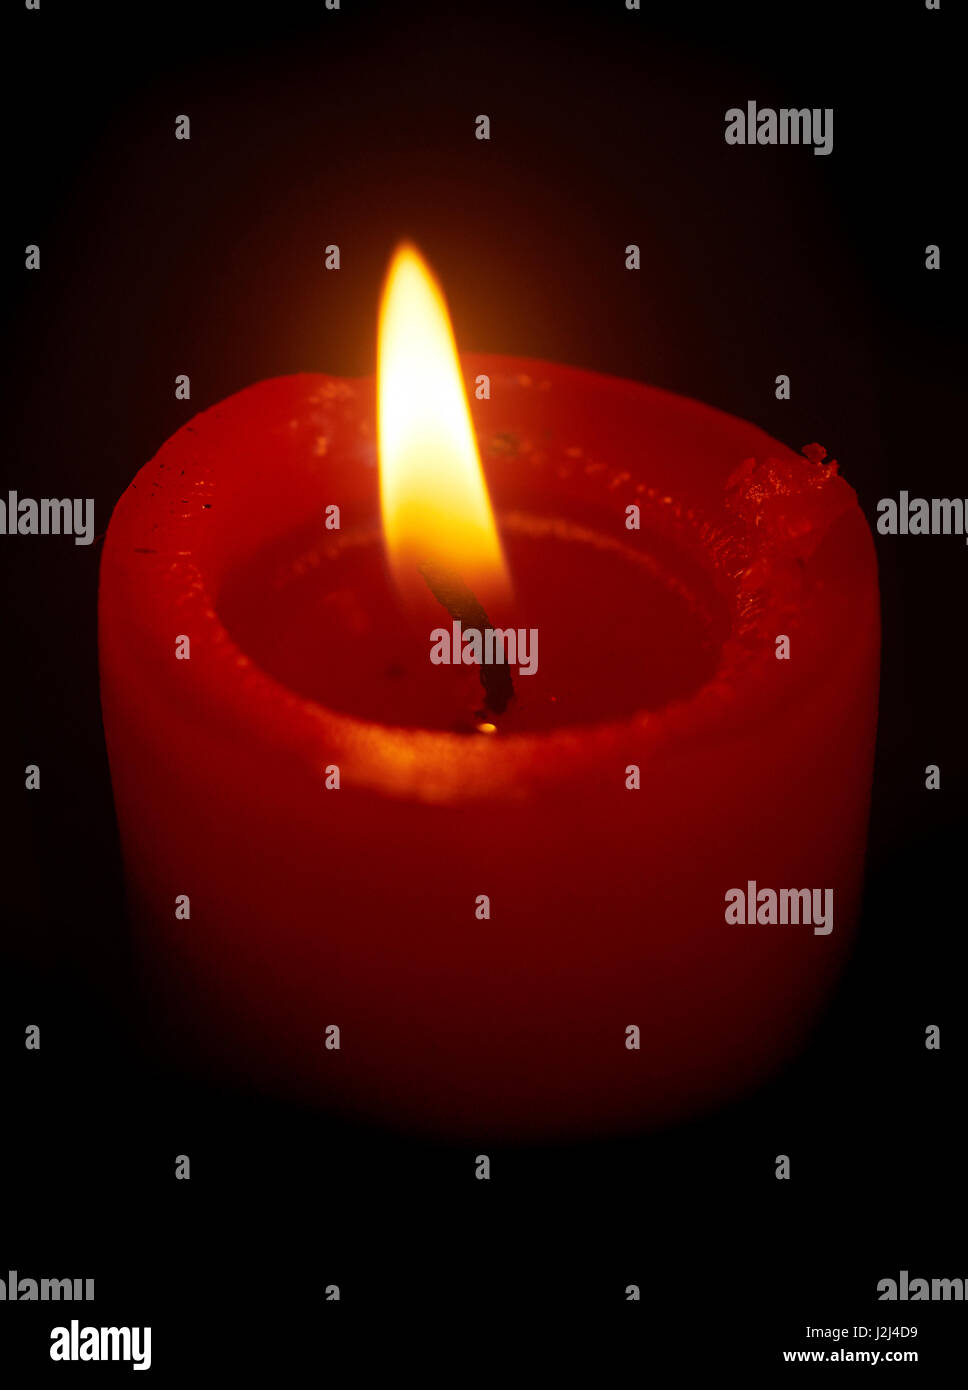 Red Candle Flame Stock Photos & Red Candle Flame Stock ...